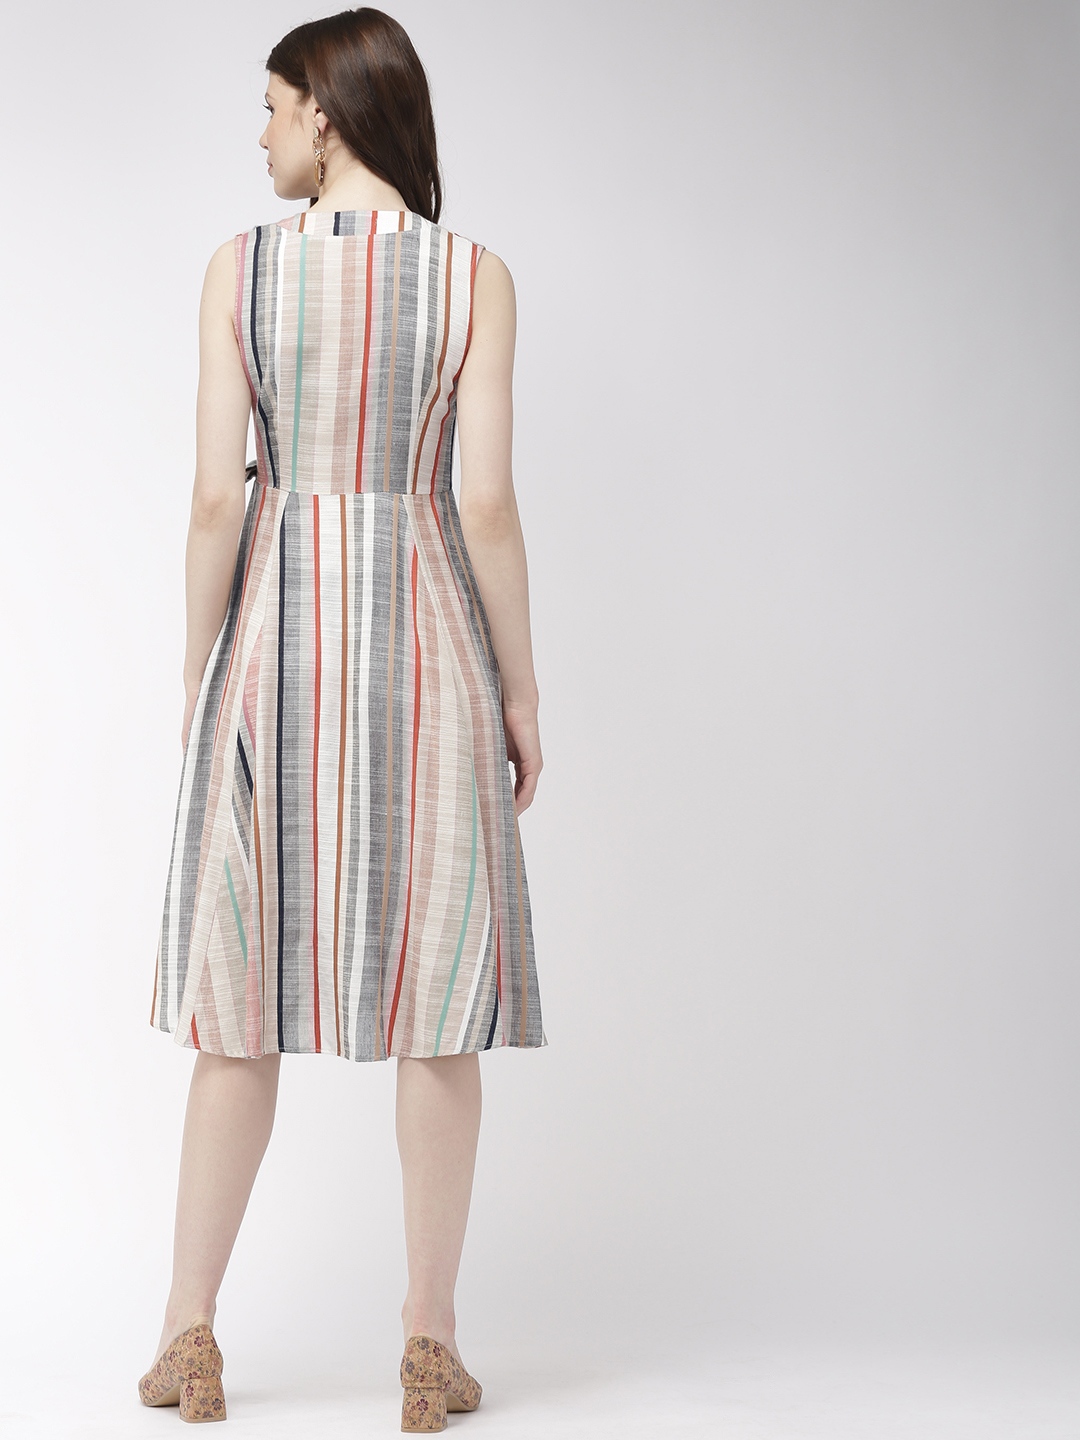 Dresses-Wraps All The Way Midi Dress3